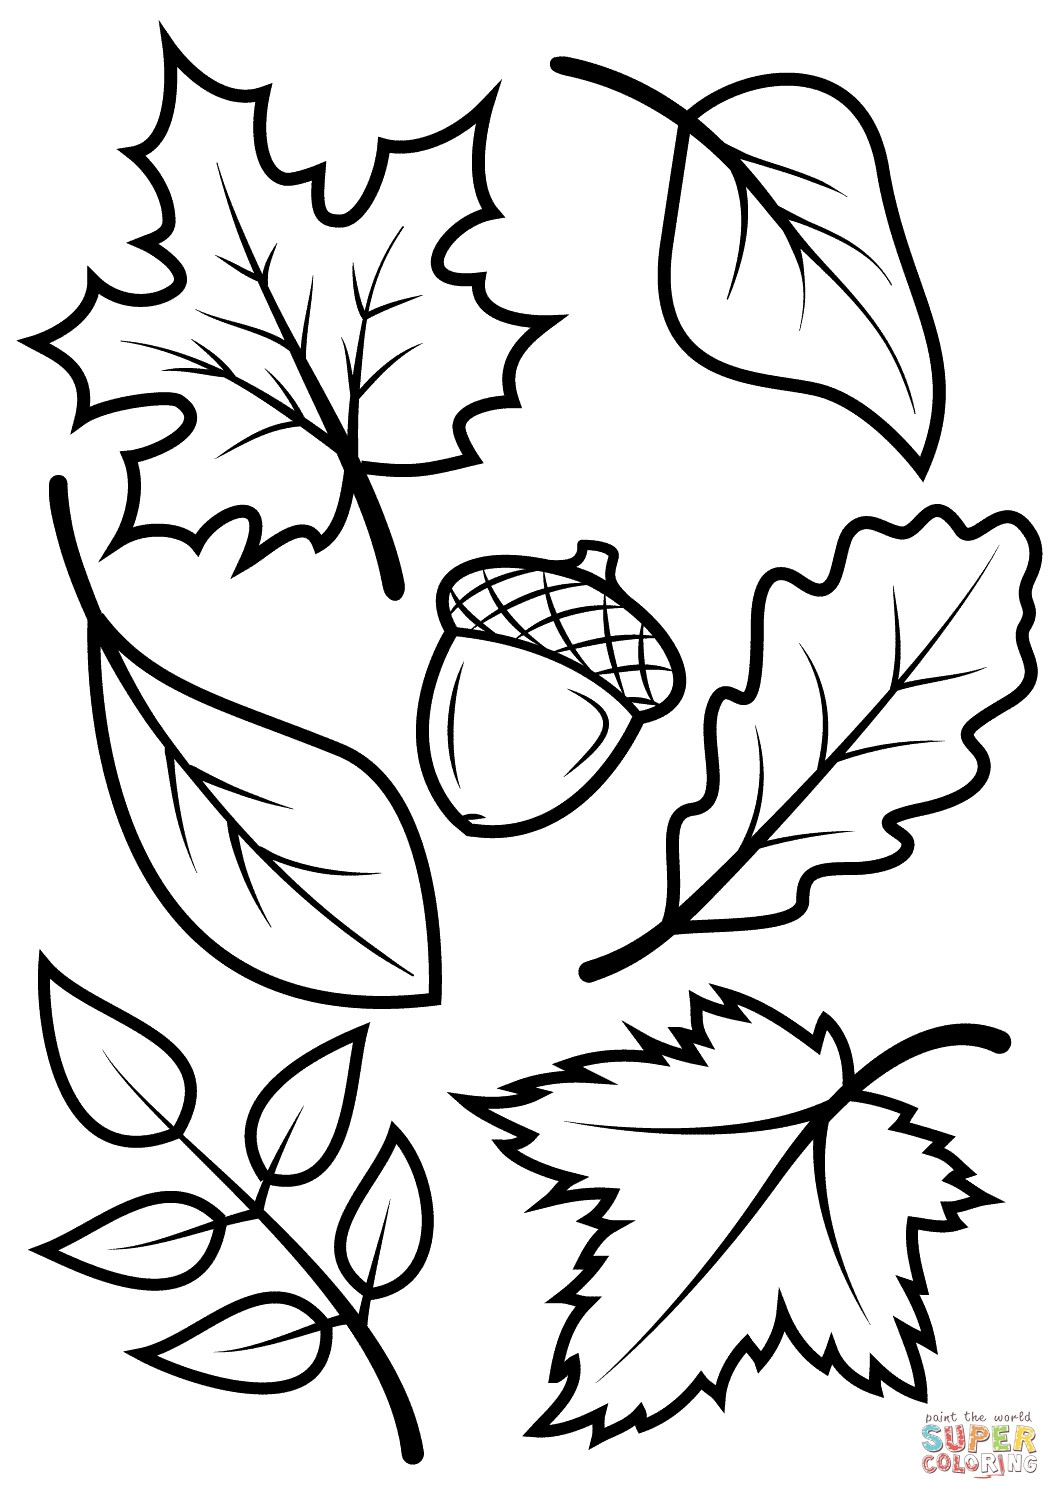 vase painting of new cool vases flower vase coloring page pages flowers in a top i 0d with new cool vases flower vase coloring page pages flowers in a top i 0d